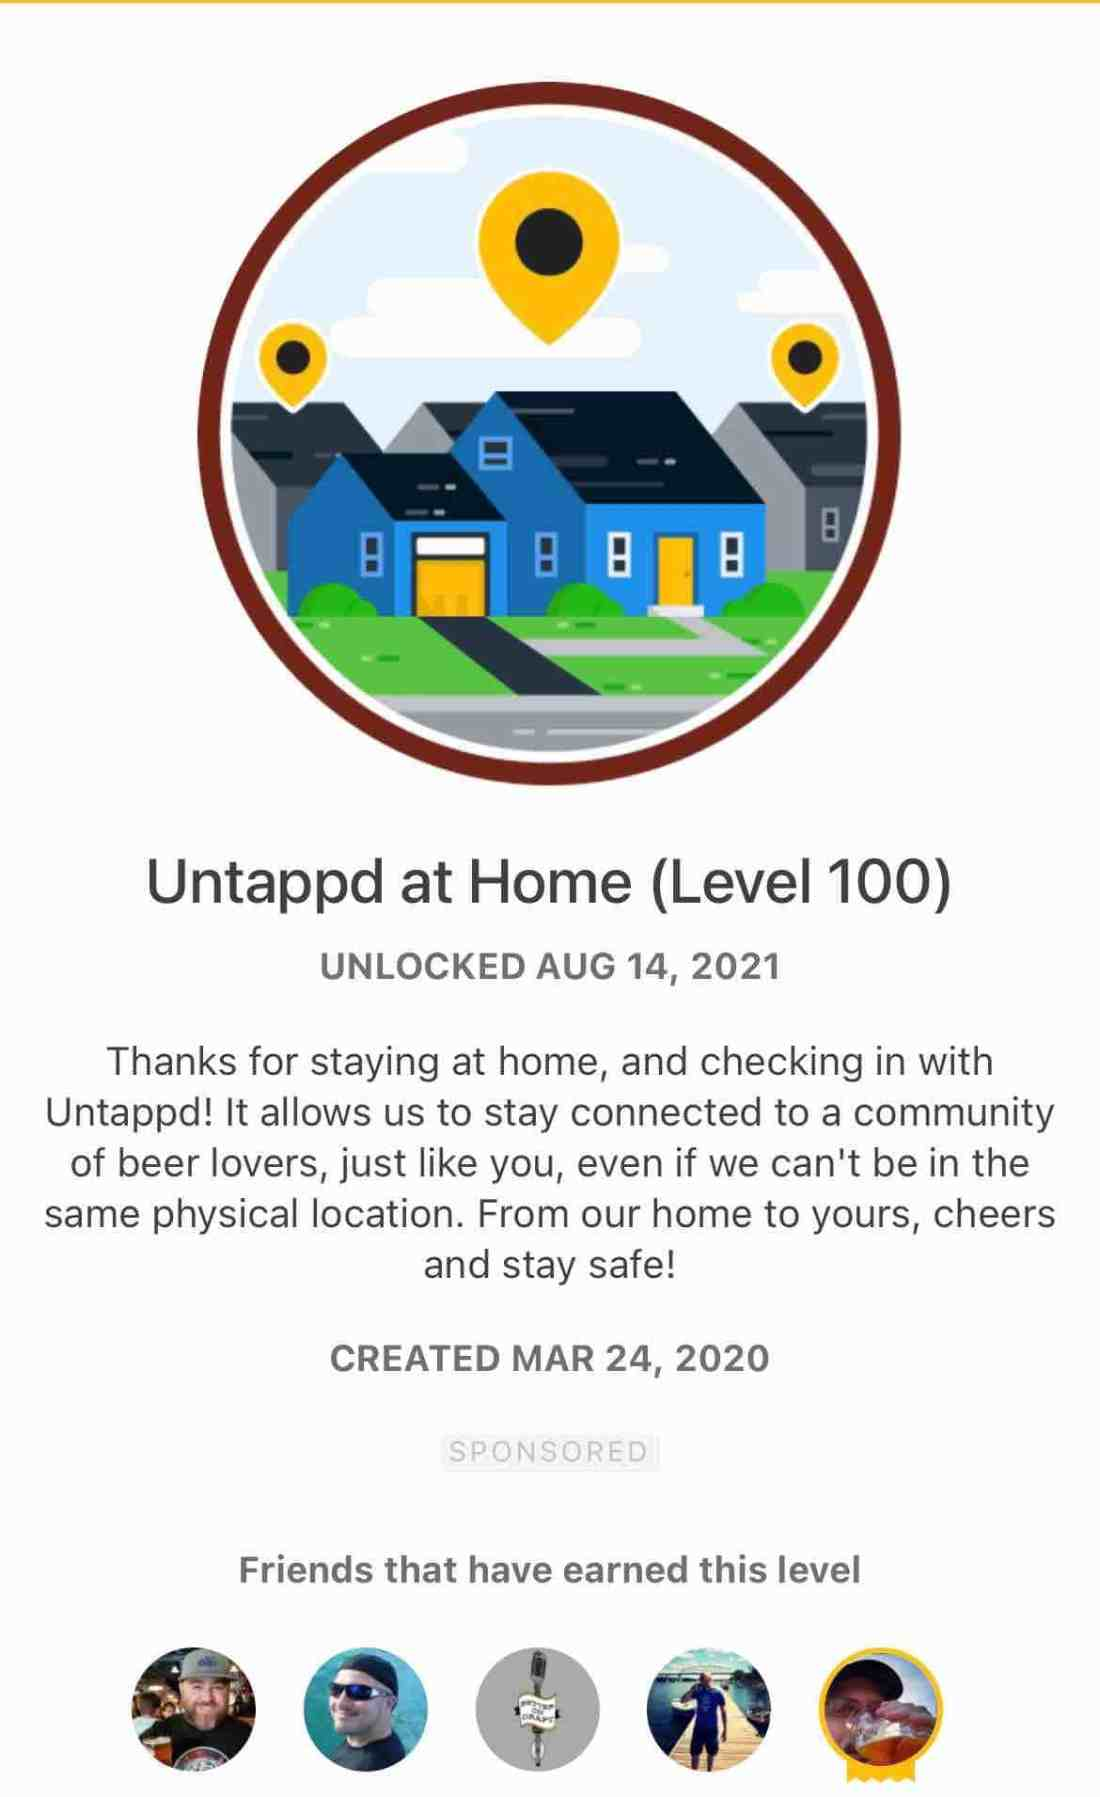 At Home Level 100 Badge from Untappd